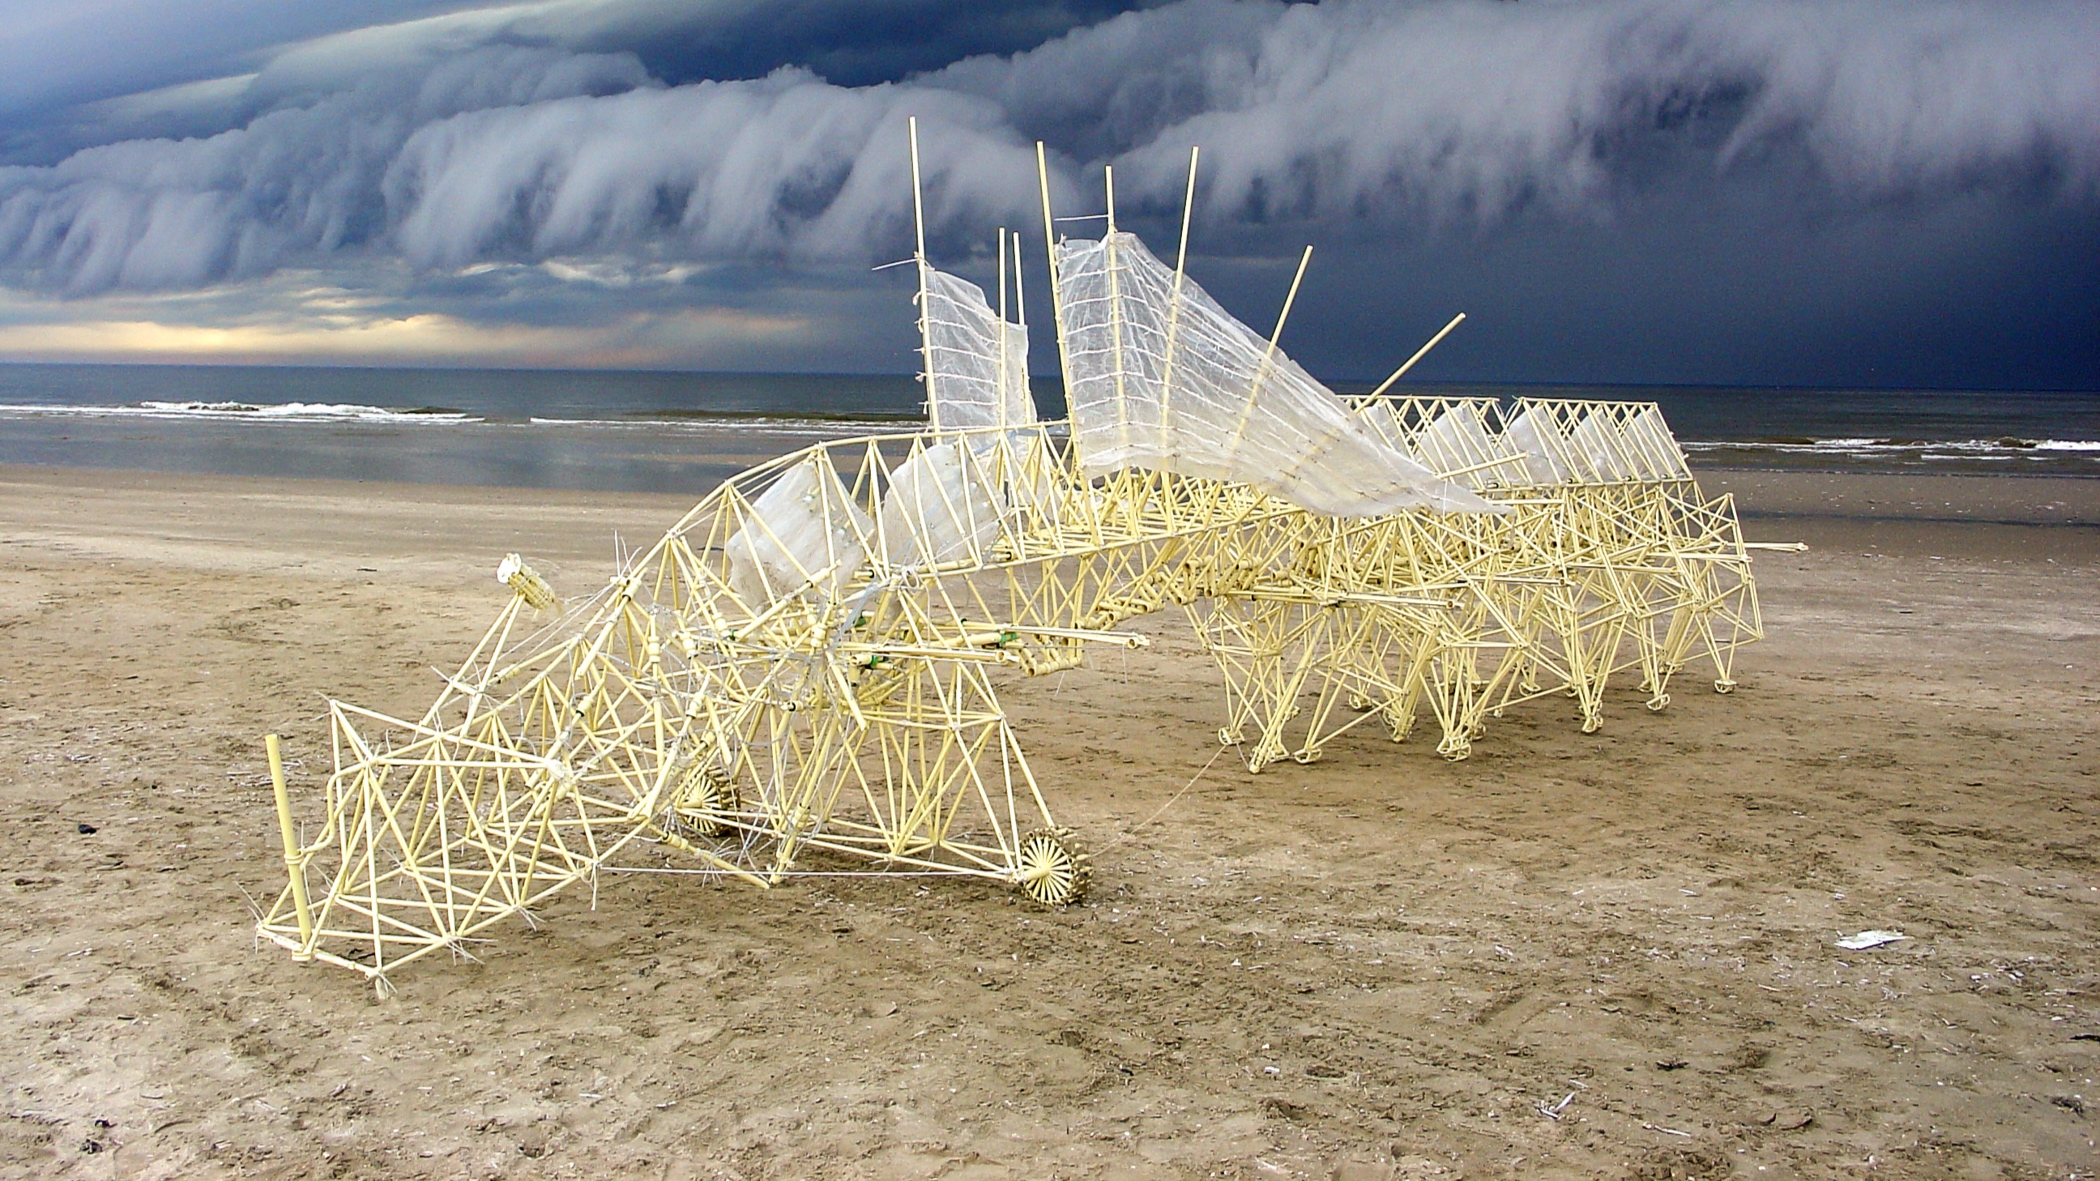 the fascinating Strandbeests by Theo Jansen